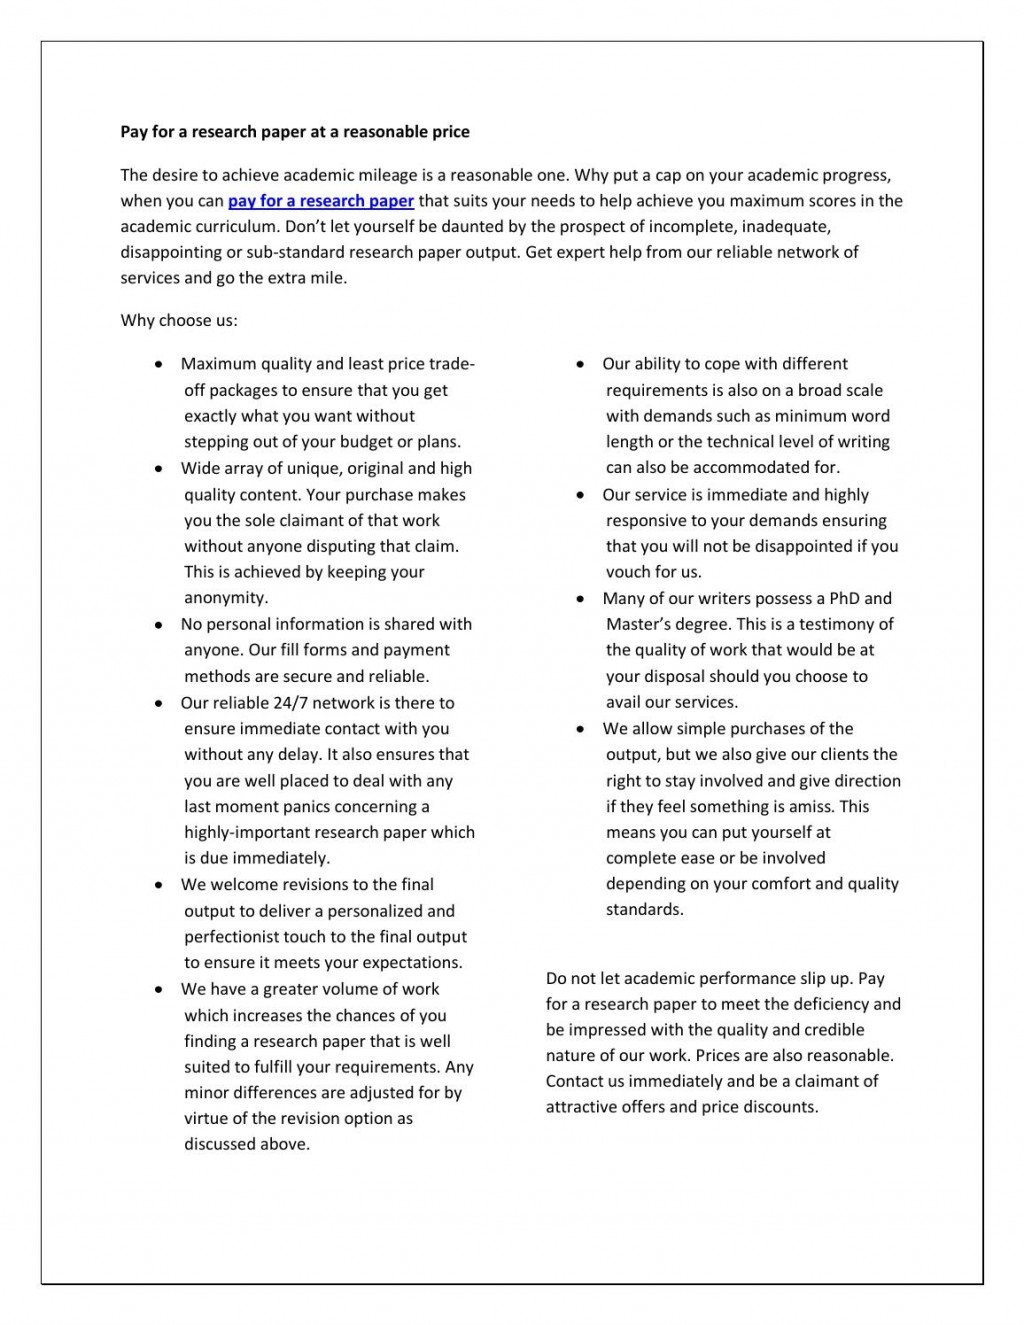 003 Pay For Research Paper Page 1 Formidable A Performance Gap Large